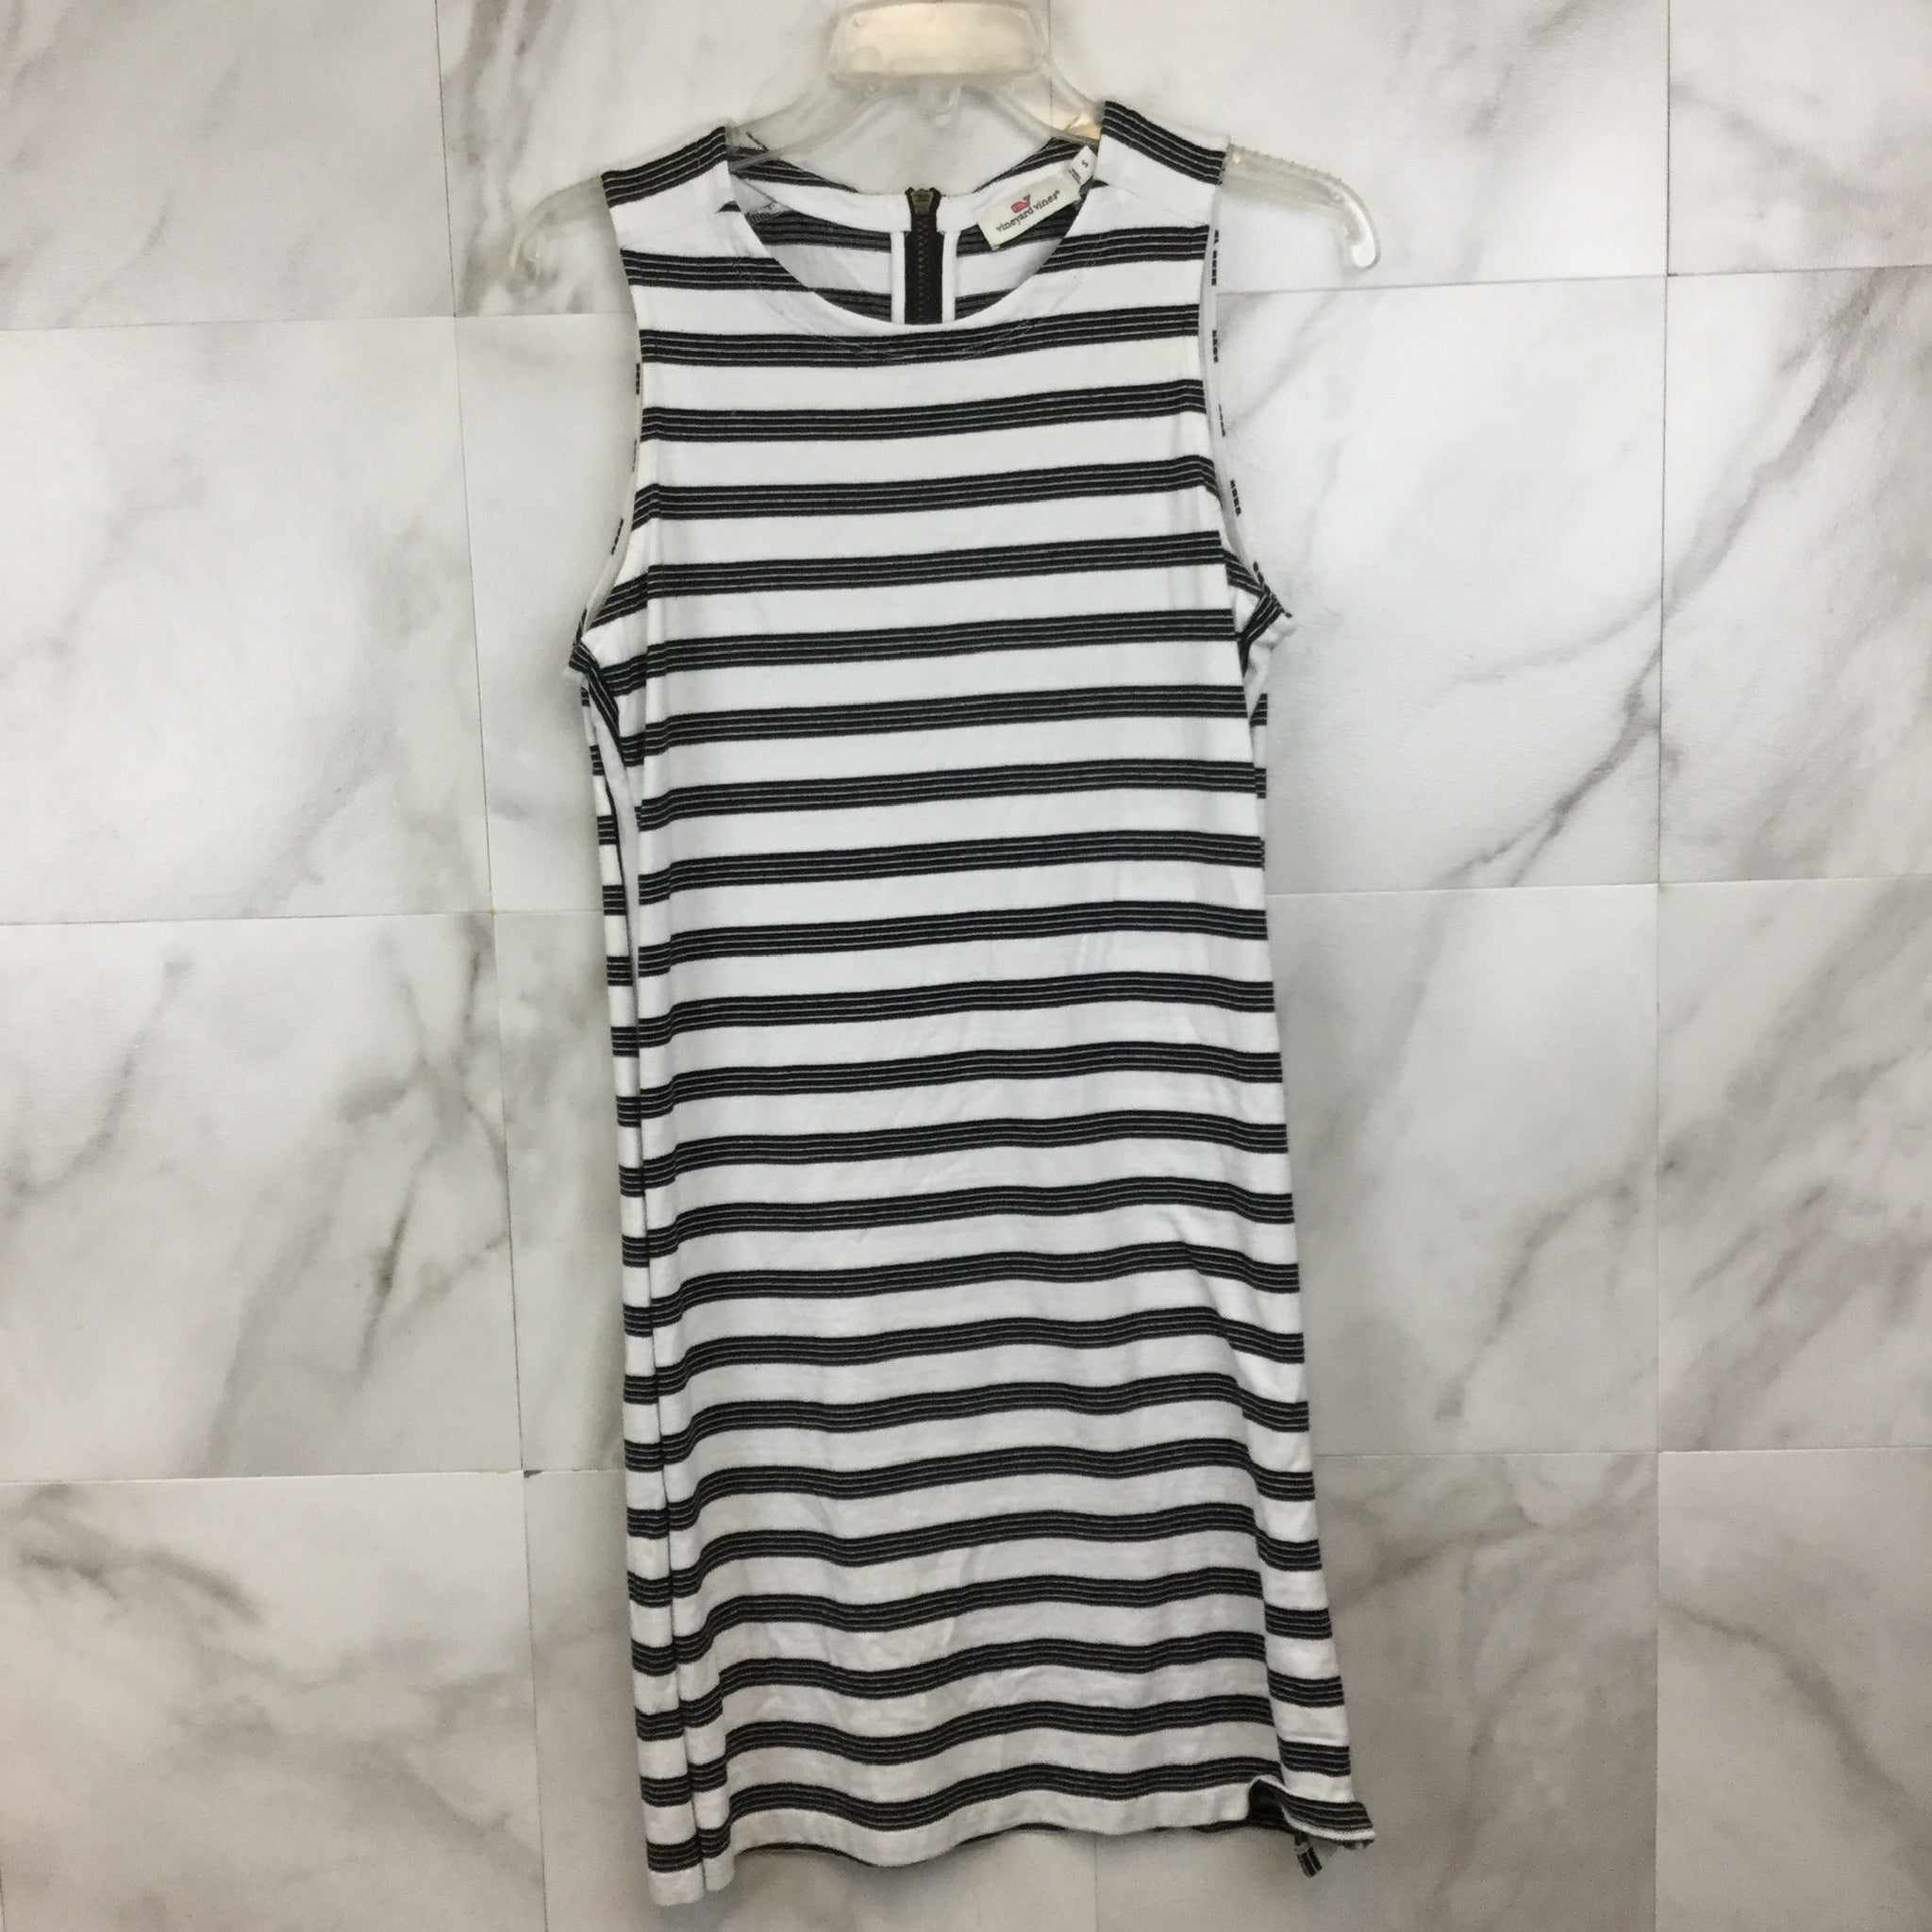 Vineyard Vines Stripe Knit Shift Dress- size S